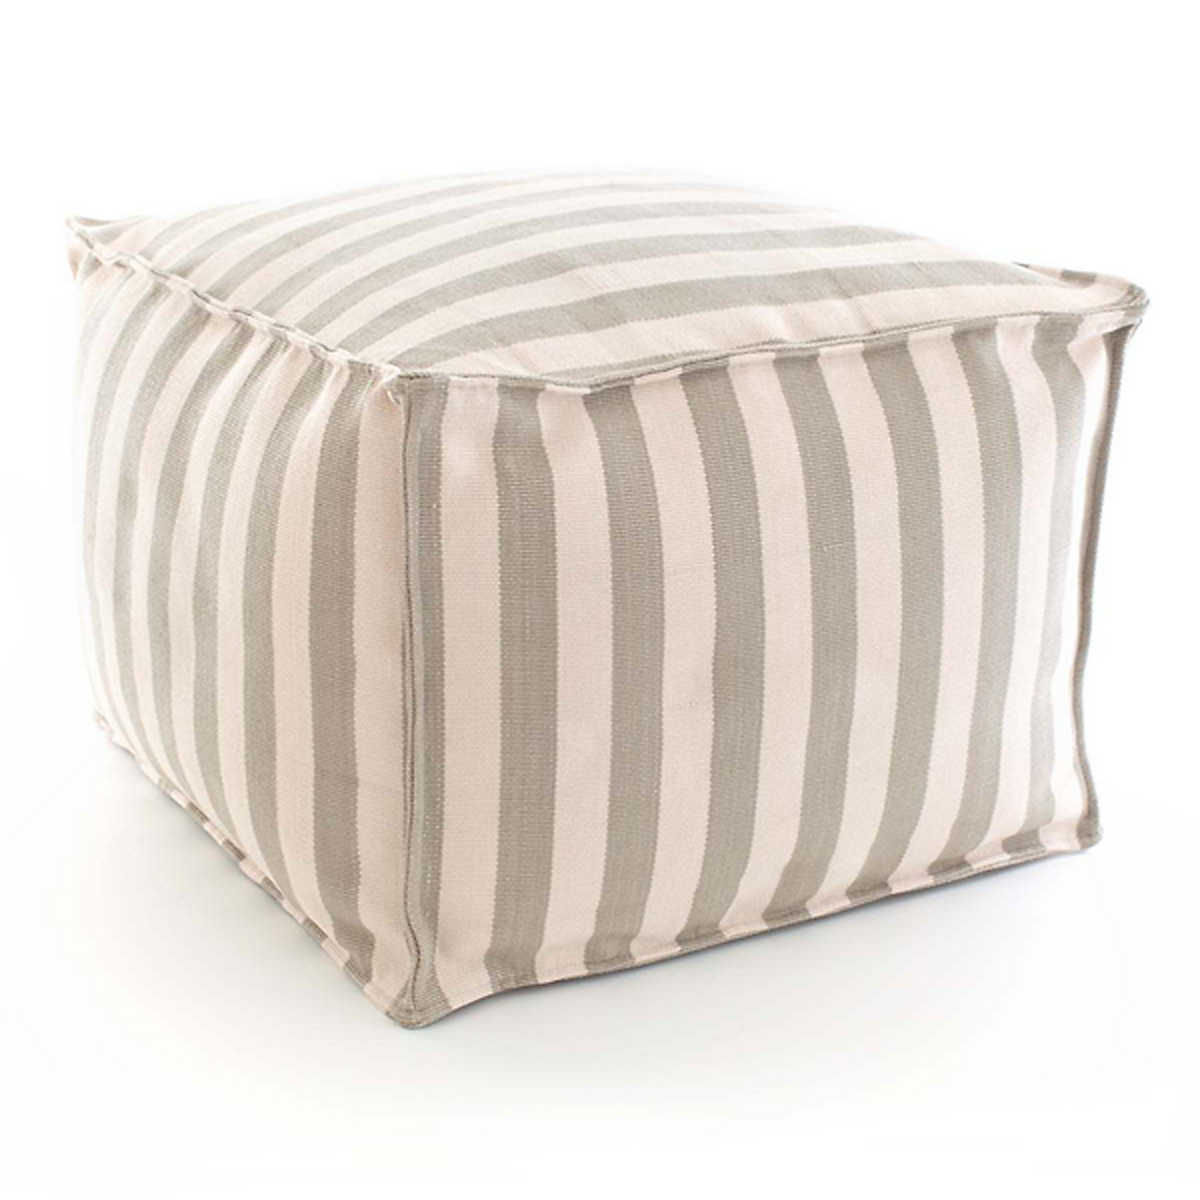 Trimarin Stripe Indoor Outdoor Pouf Hildreth S Home Goodshildreth S Has The Largest Selection Of Indoor And Outdoor Furniture Accessories The East End Of Long Island Ny We Carry Sofas Tables Rugs Bedding